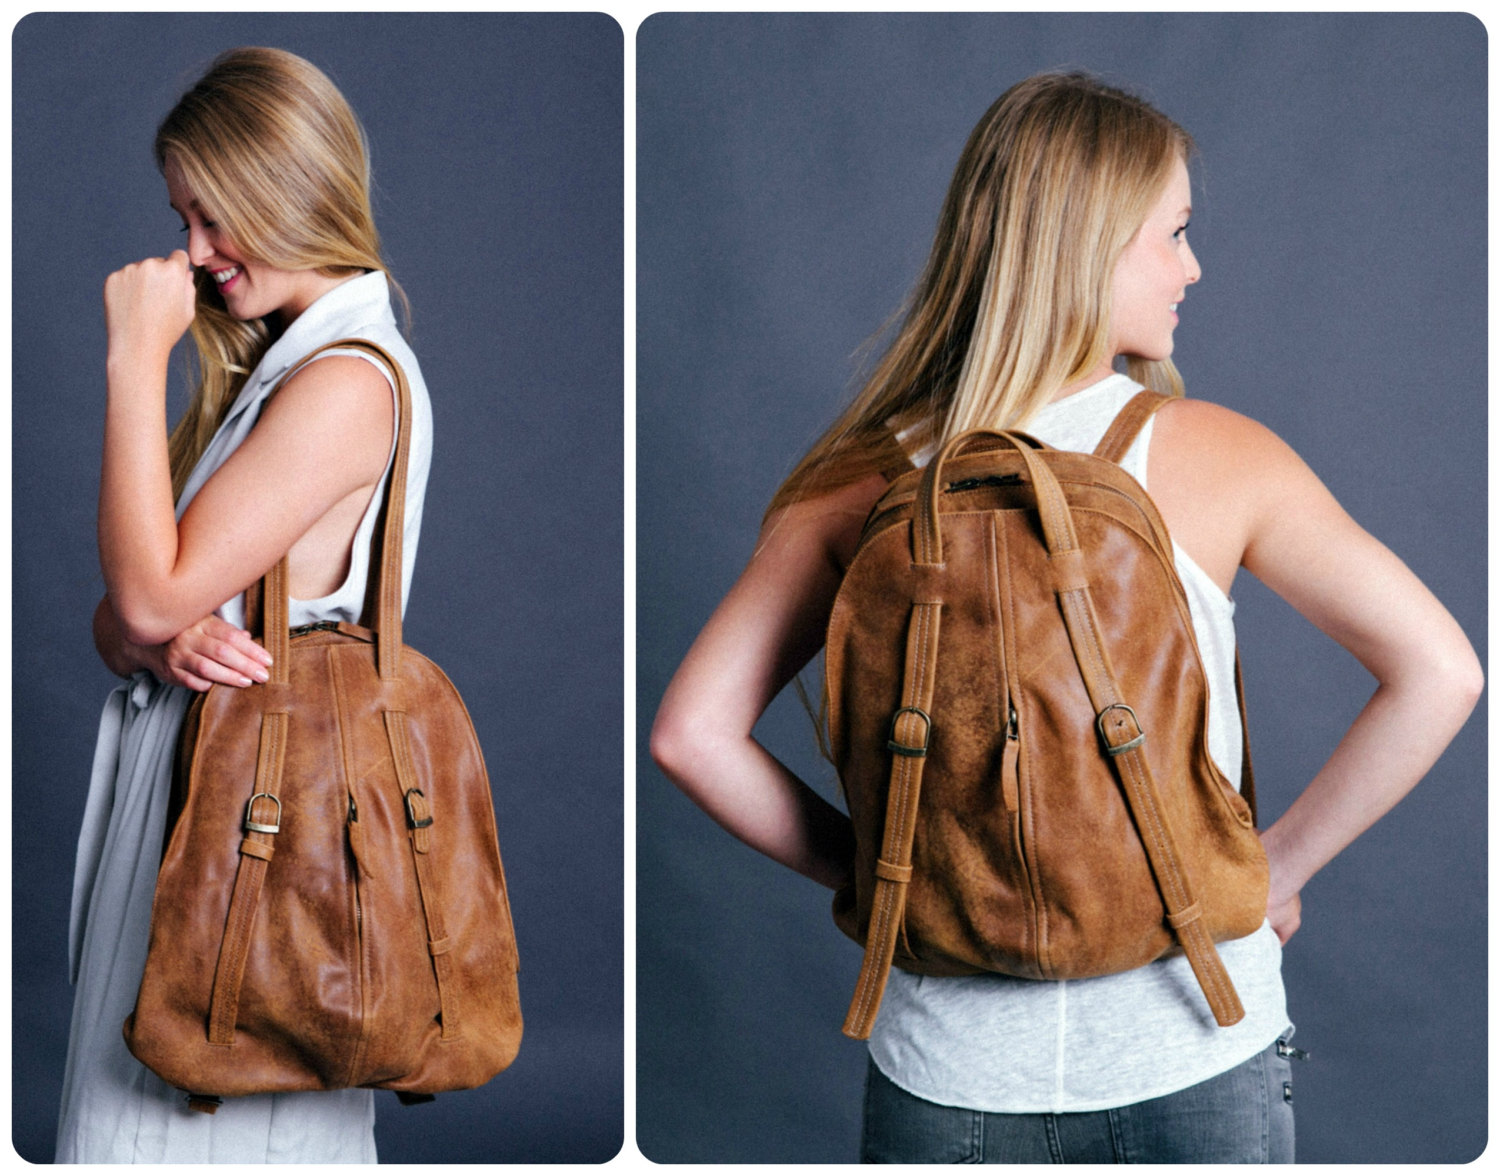 Soft Leather Backpack Purse - Best Purse Image Ccdbb.Org e7d01fcdcabb7